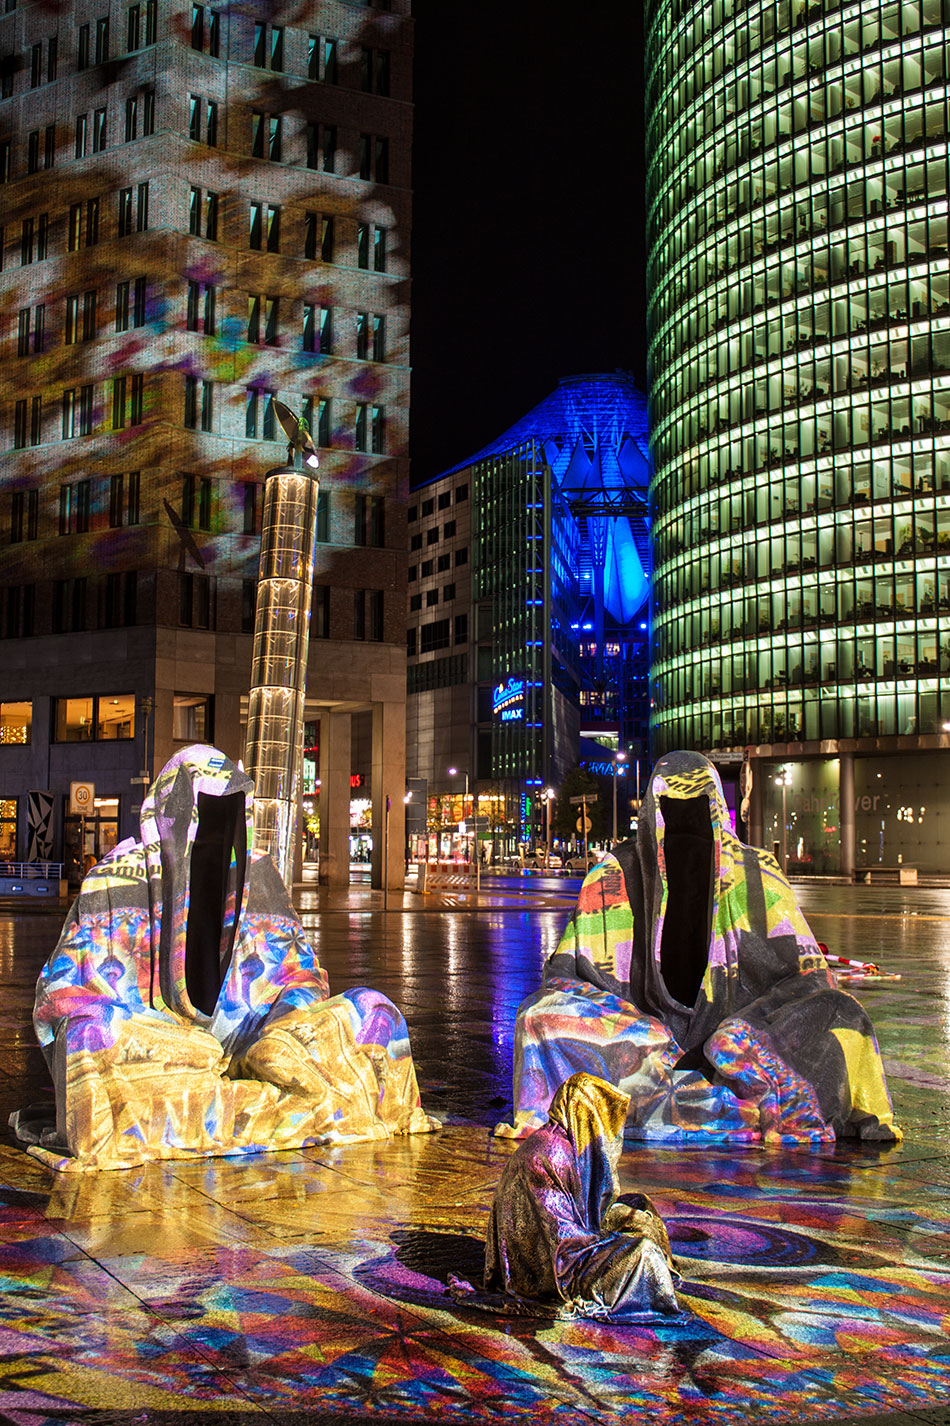 festival-of-lights-berlin-light-art-festival-contemporary-fine-art-design-show-large-scale-sculpture-guardiansof-time-manfred-kili-kielnhofer-sculpture-3898